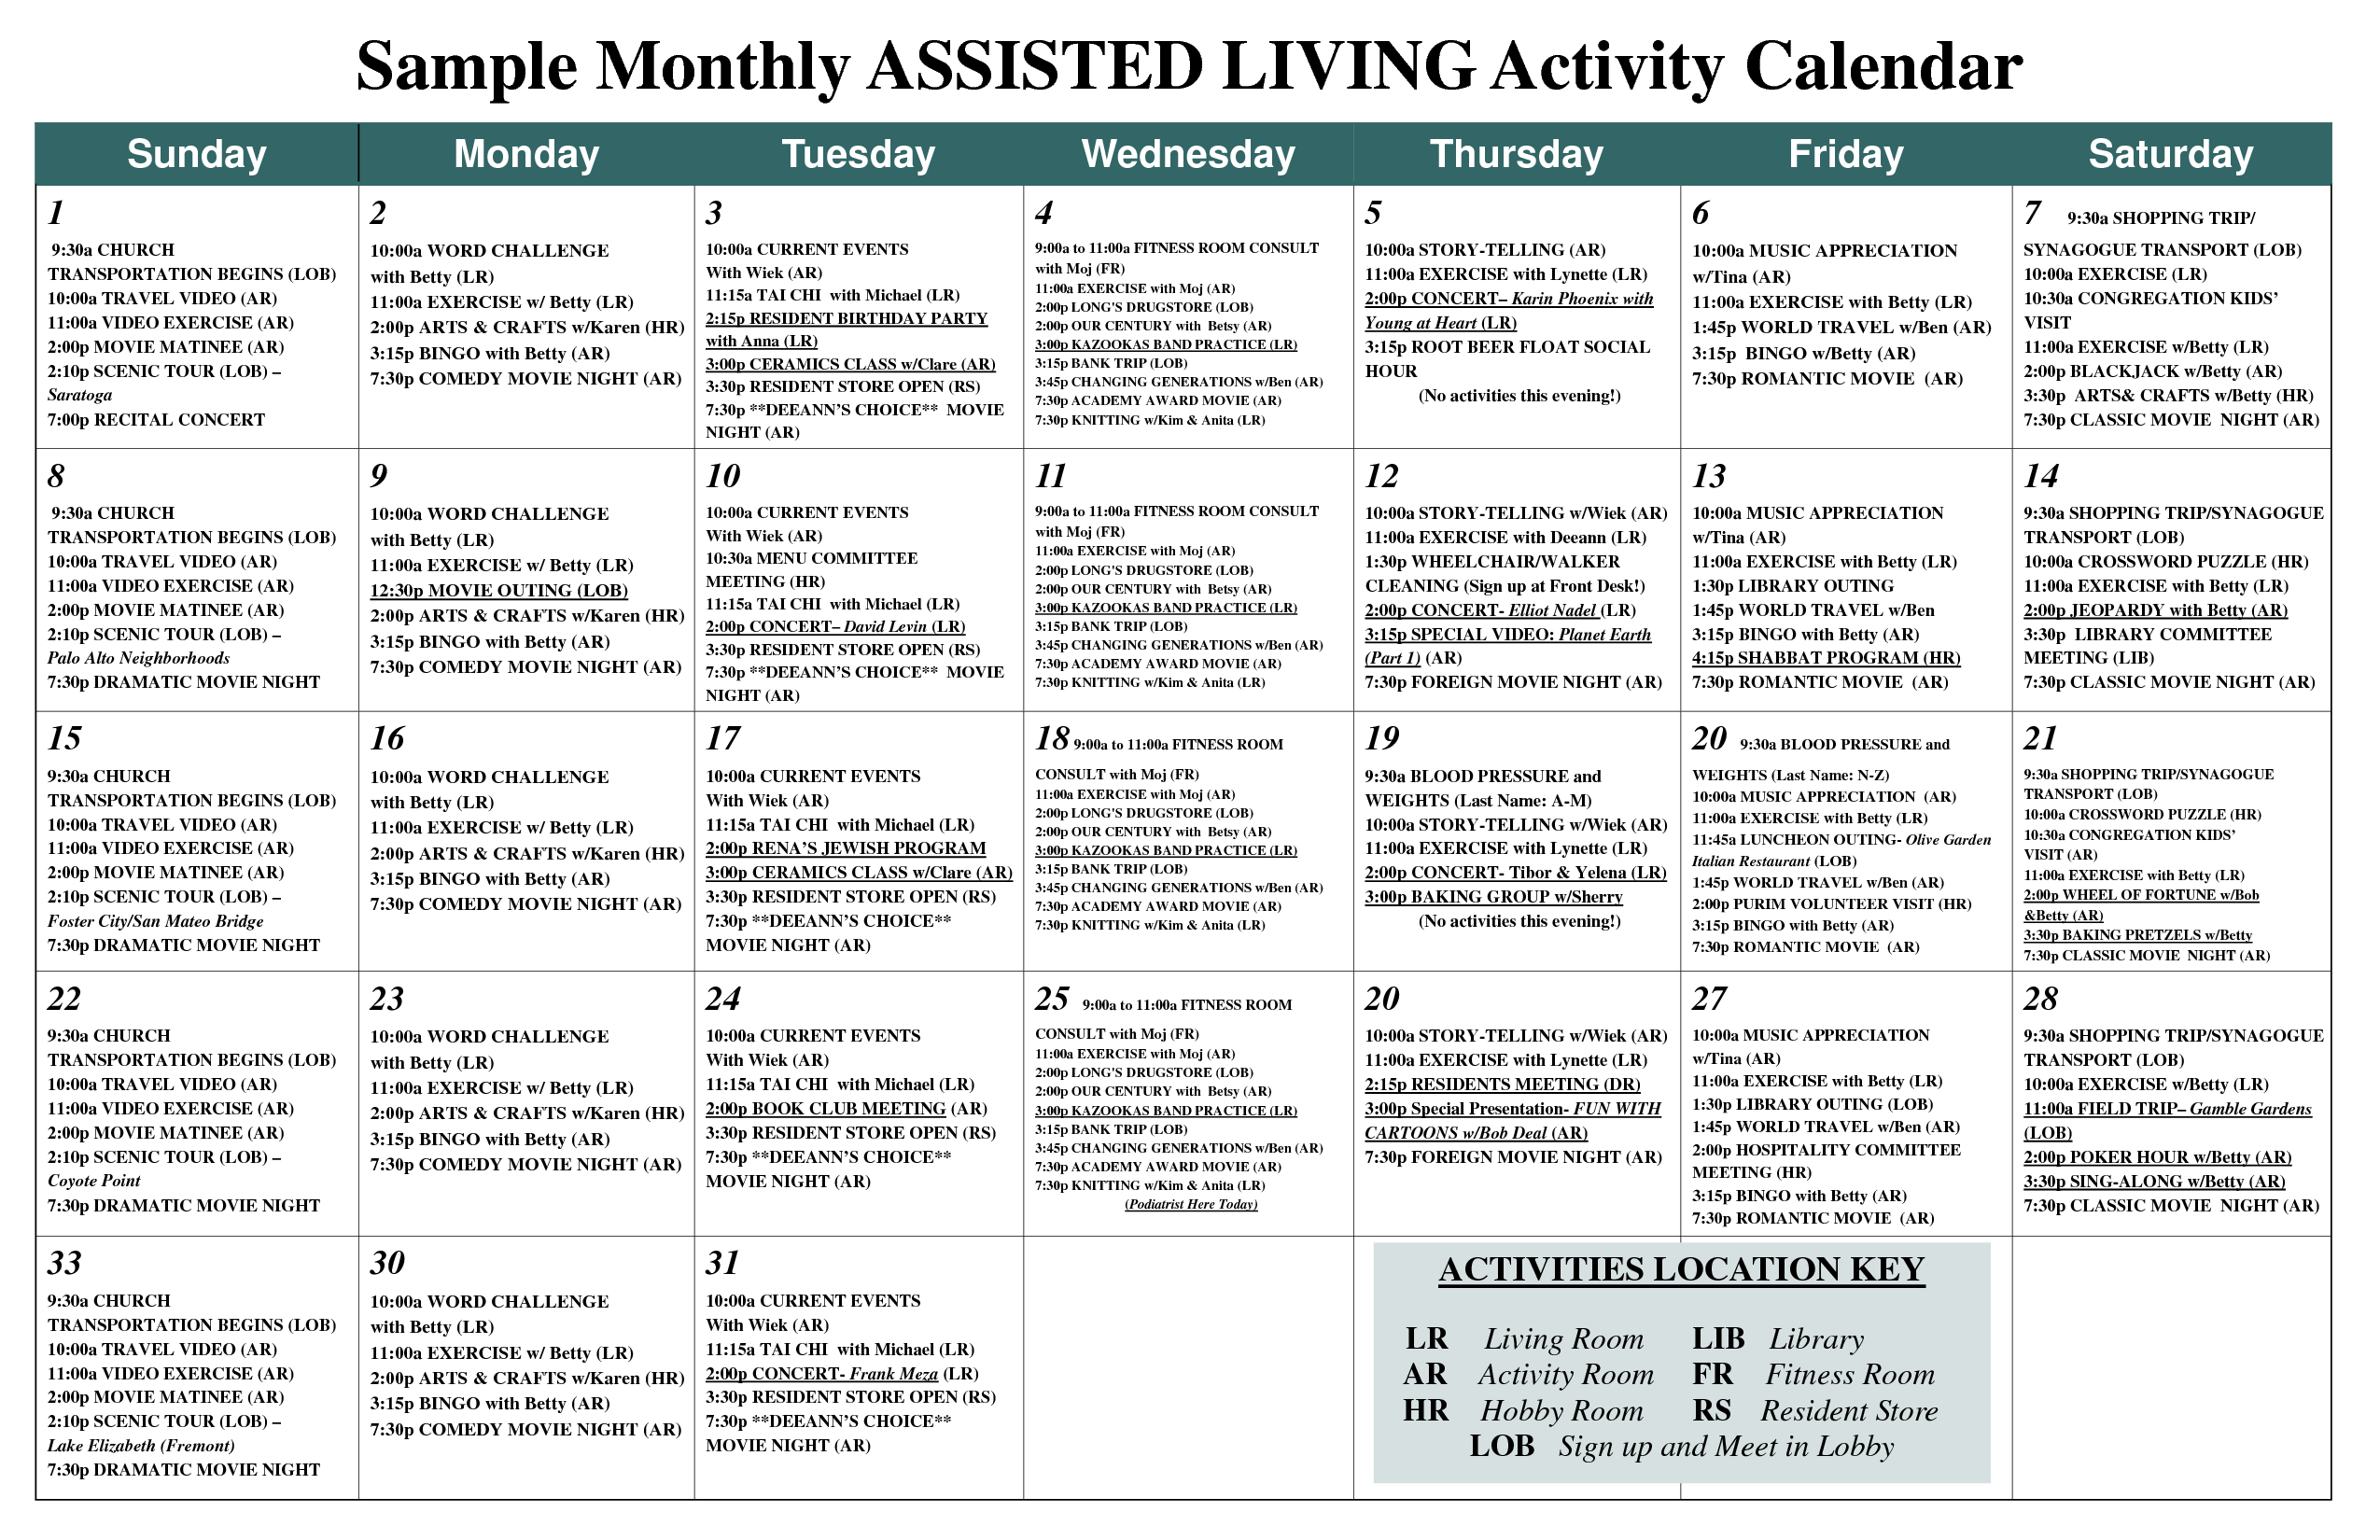 Sample Monthly ASSISTED LIVING Activity Calendar - PDF | Work ideas ...